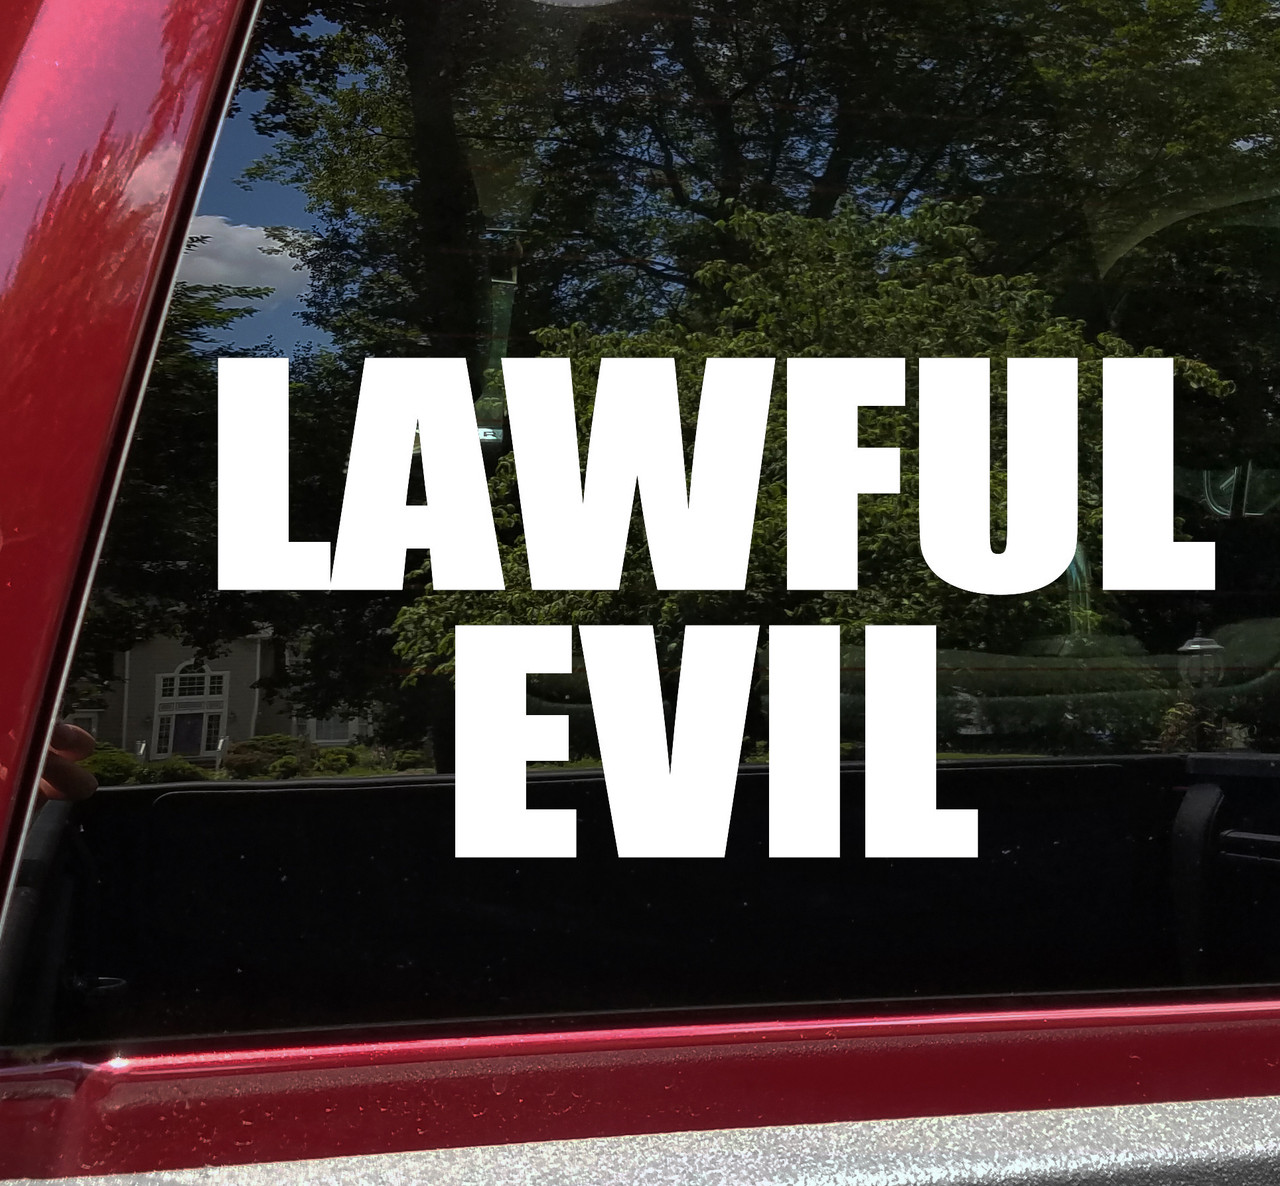 Lawful Evil Vinyl Sticker - RPG Role Playing Character Alignment V2 - Die Cut Decal